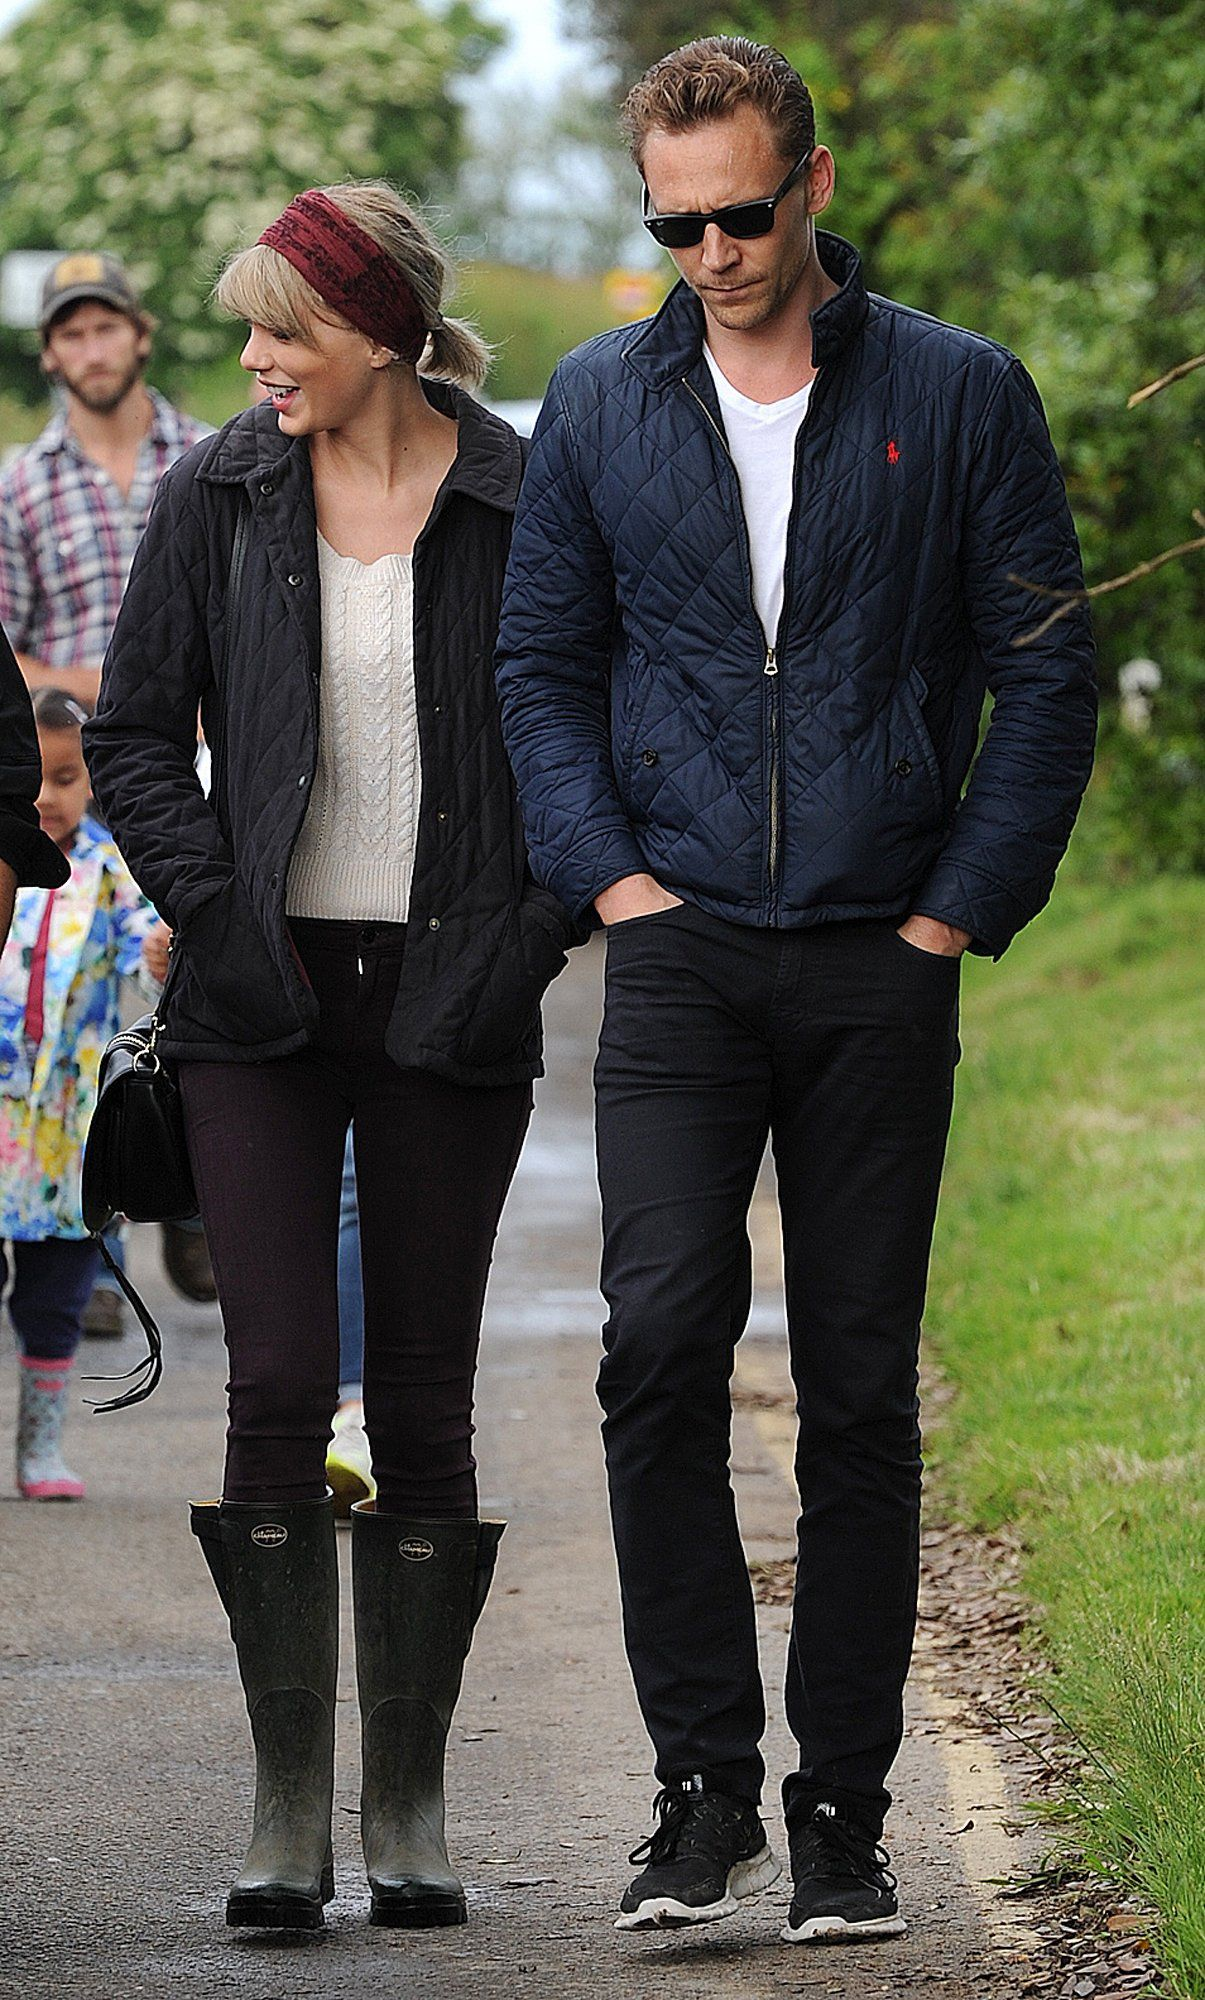 Resultado de imagen para taylor swift tom hiddleston twinning